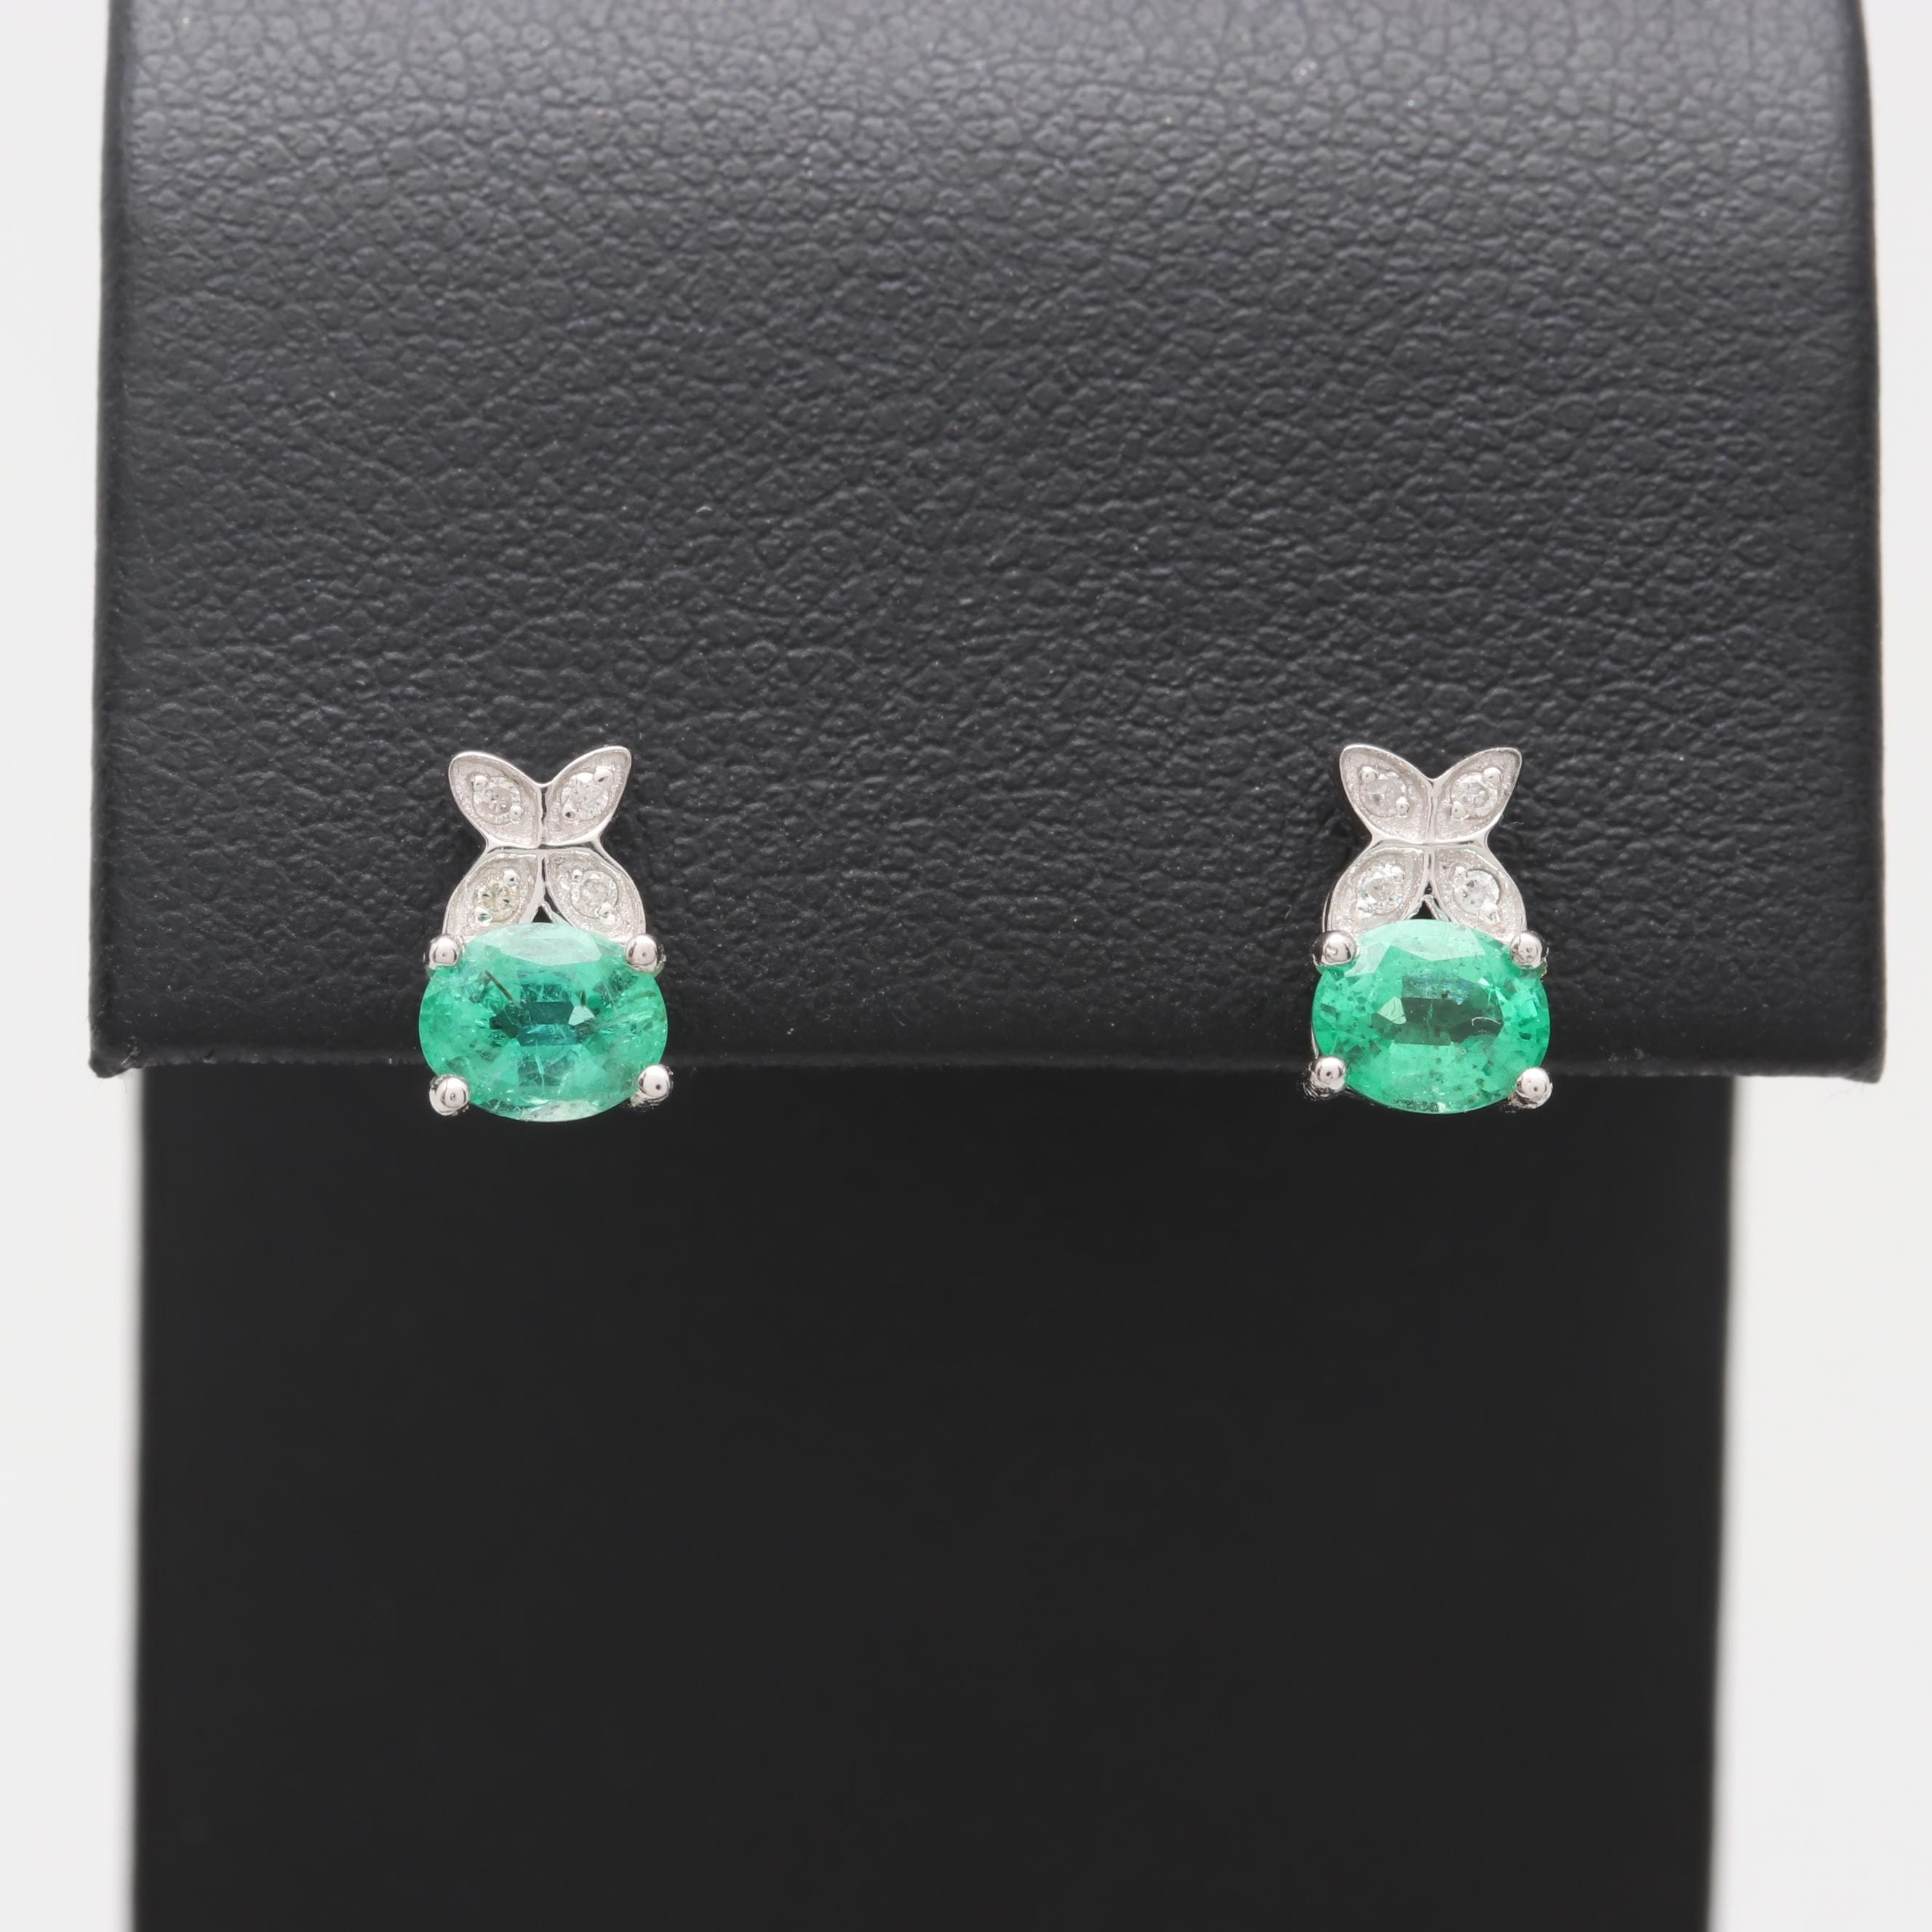 18K White Gold Emerald and Diamond Stud Earrings